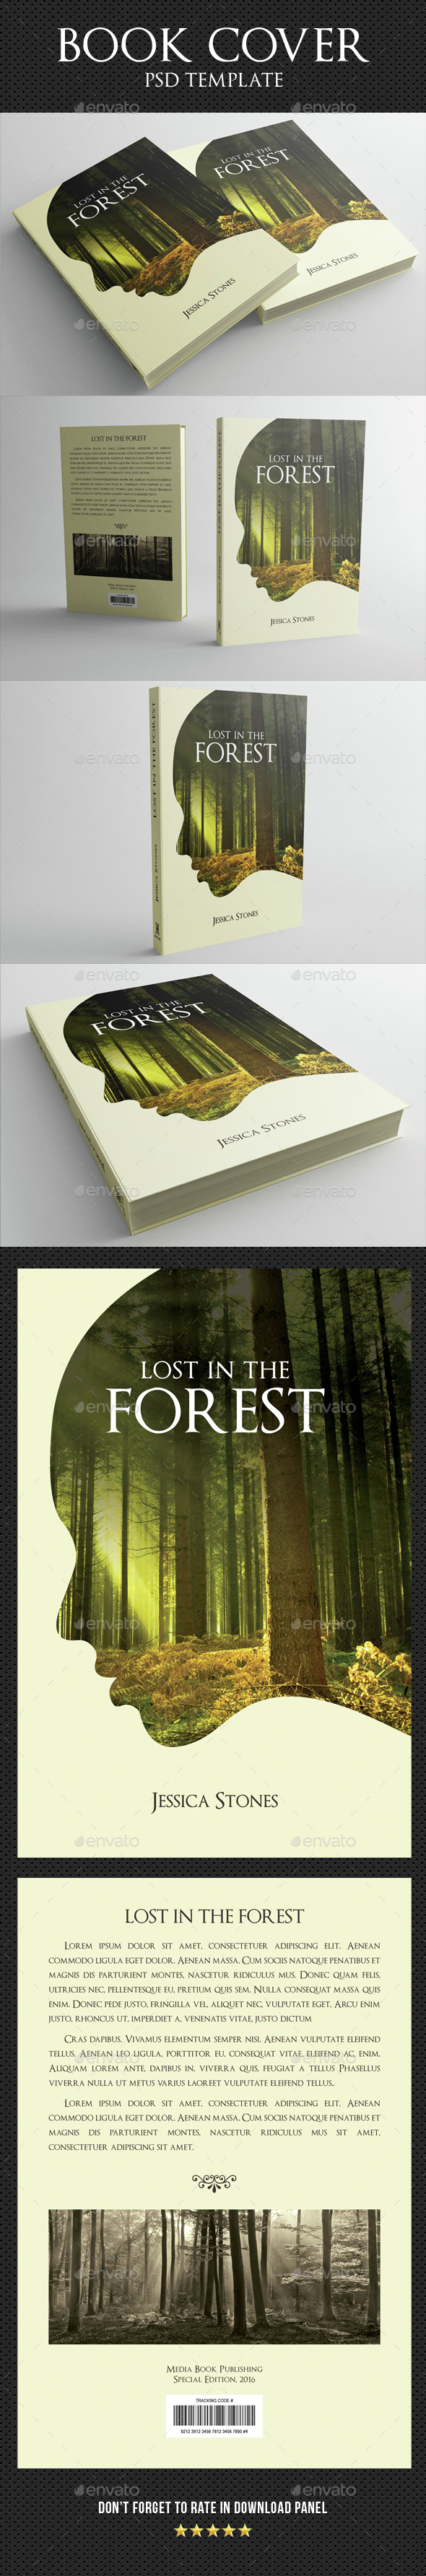 Book Cover Template 04 - Miscellaneous Print Templates